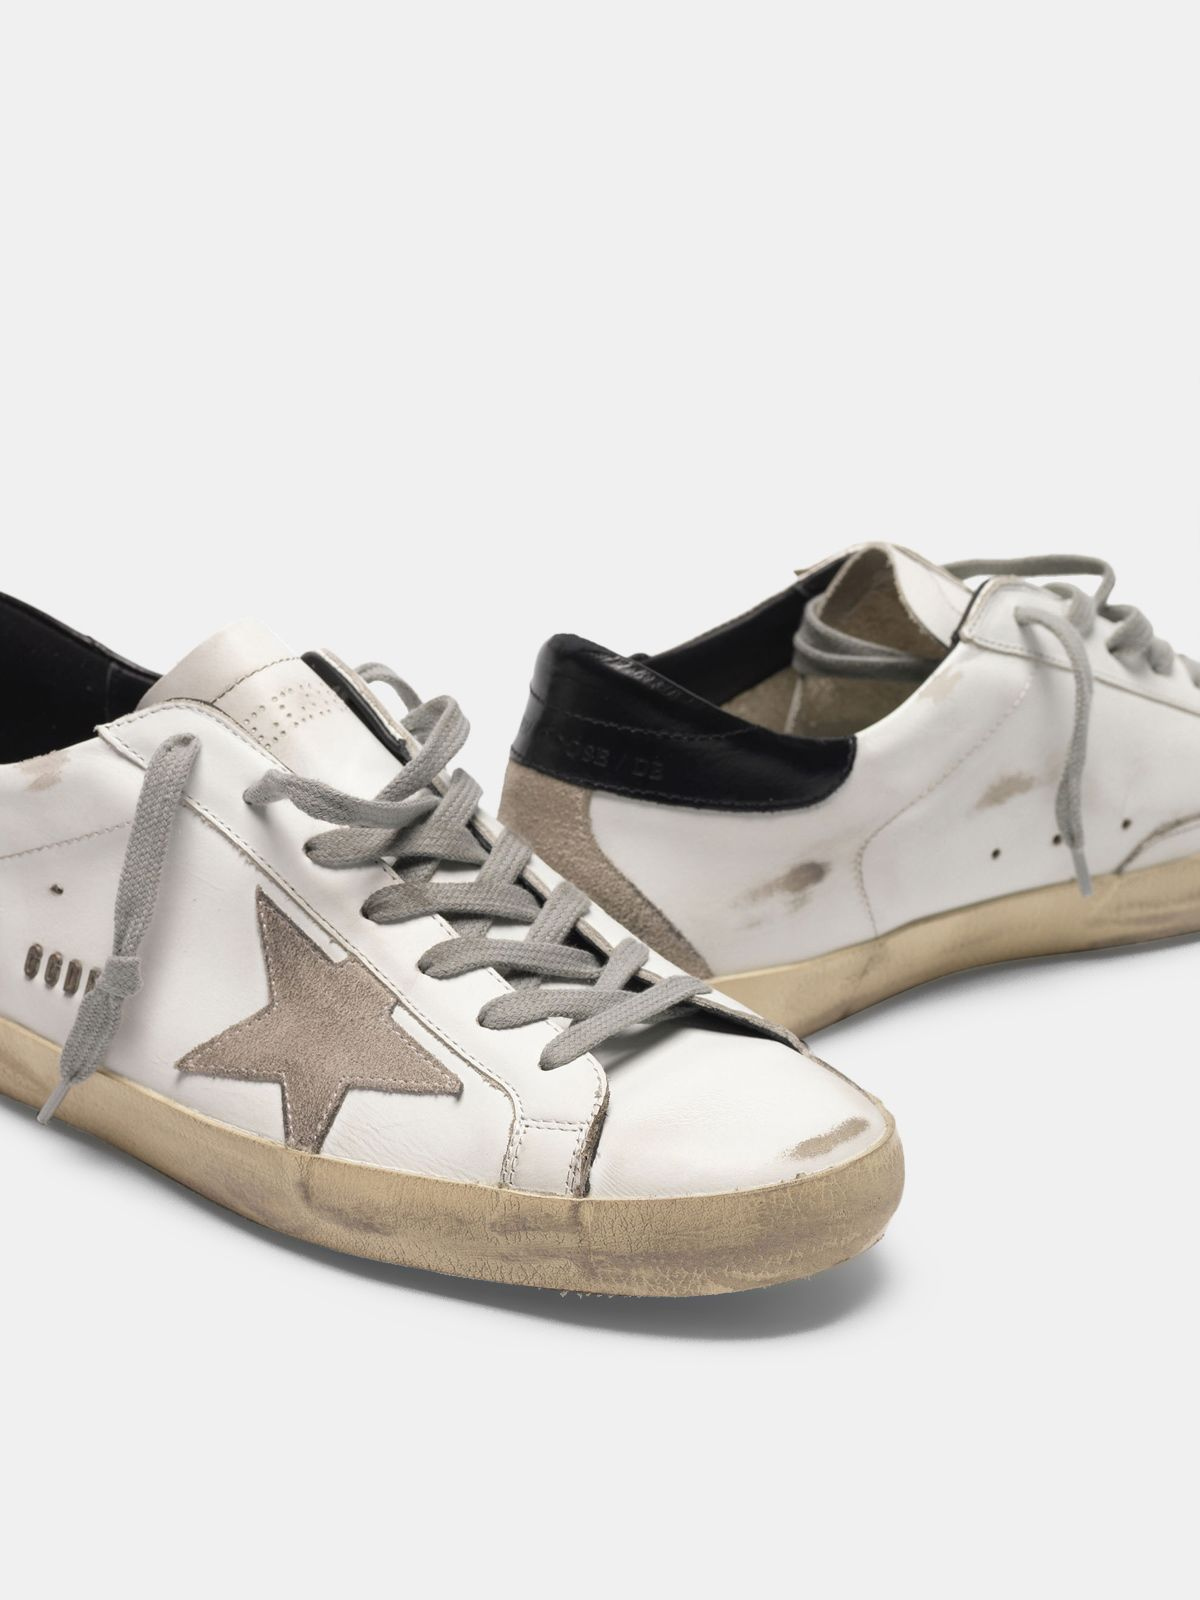 Golden Goose - Super-Star sneakers with black heel tab and metal stud lettering in